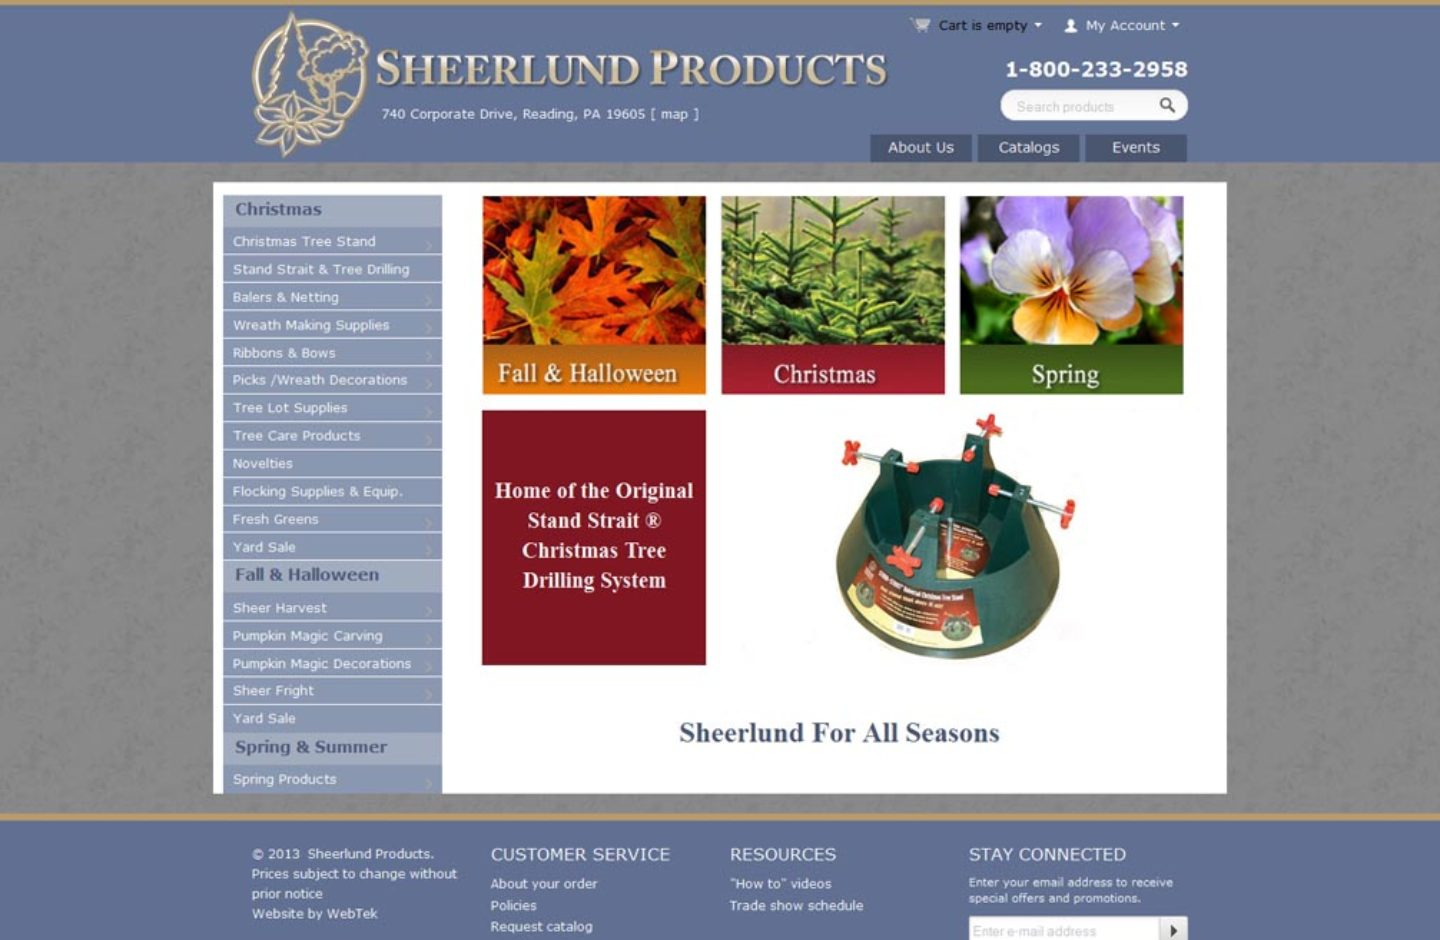 Sheerlund Products